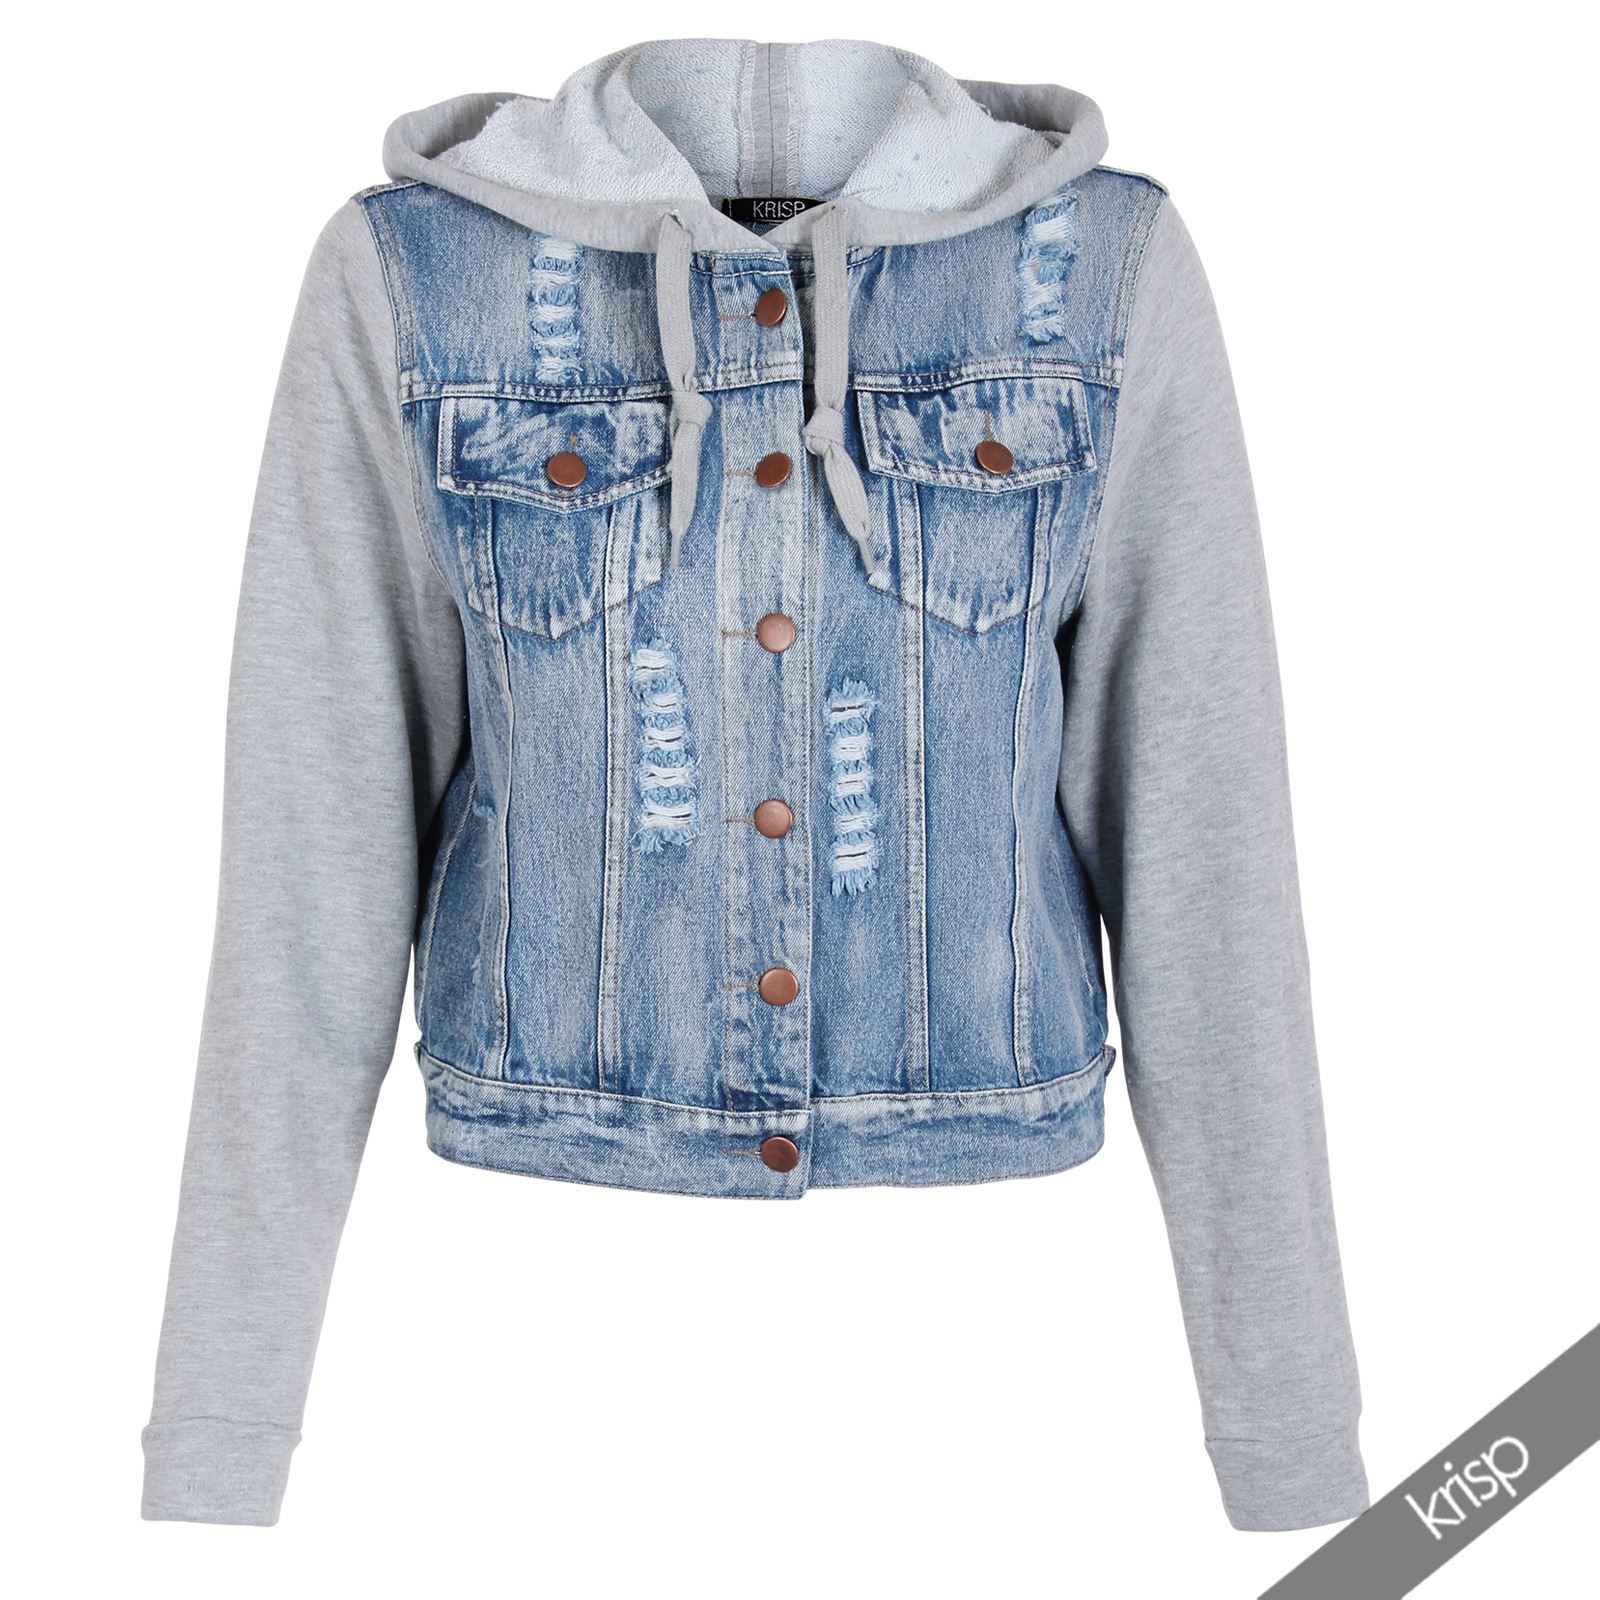 jeans jacke damen jersey rmel kapuze helle waschung ausgefranst denim biker ebay. Black Bedroom Furniture Sets. Home Design Ideas